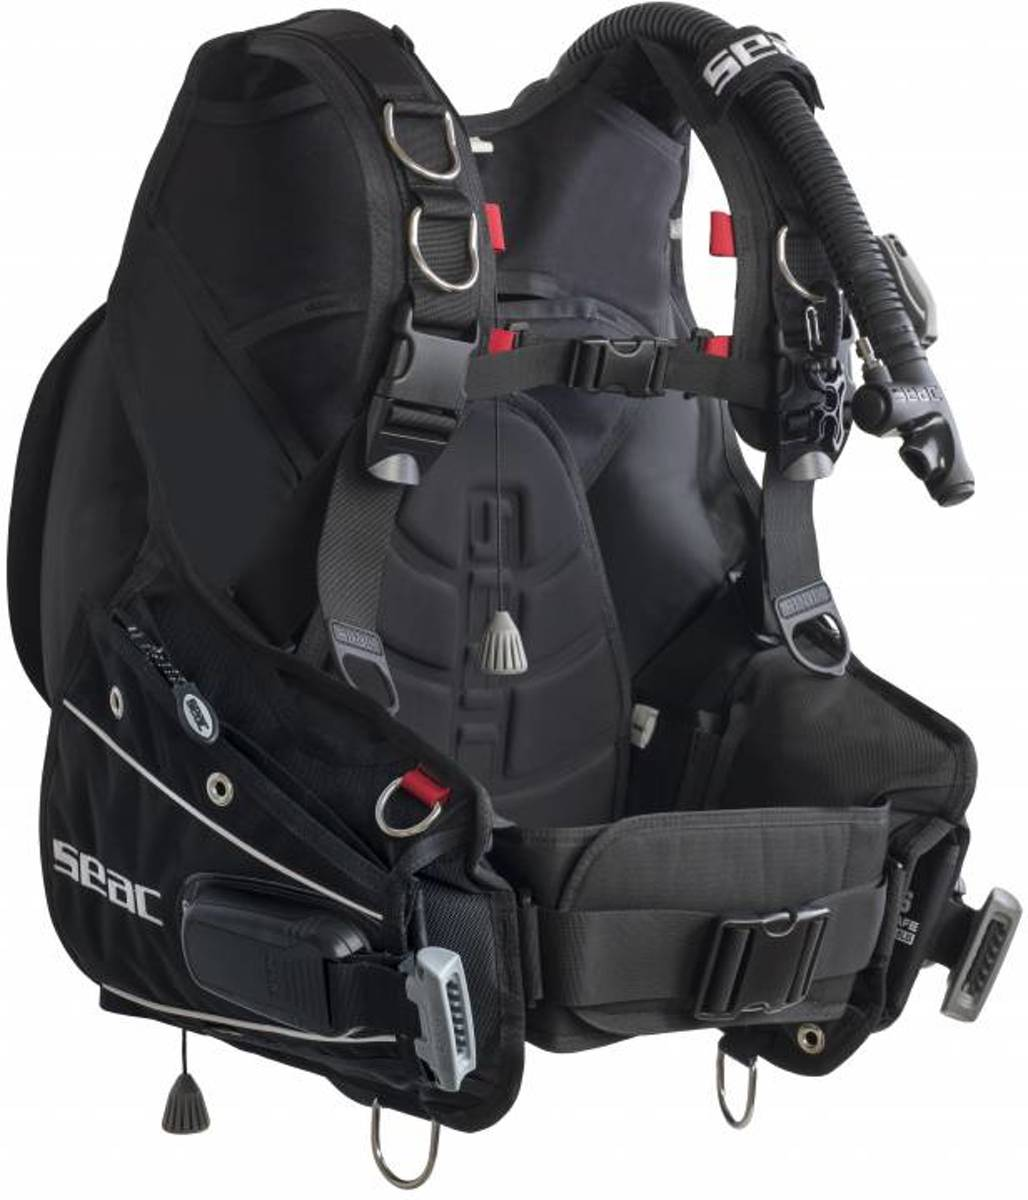 Seac Pro 2000 HD Limited Edition Trimvest - maat M